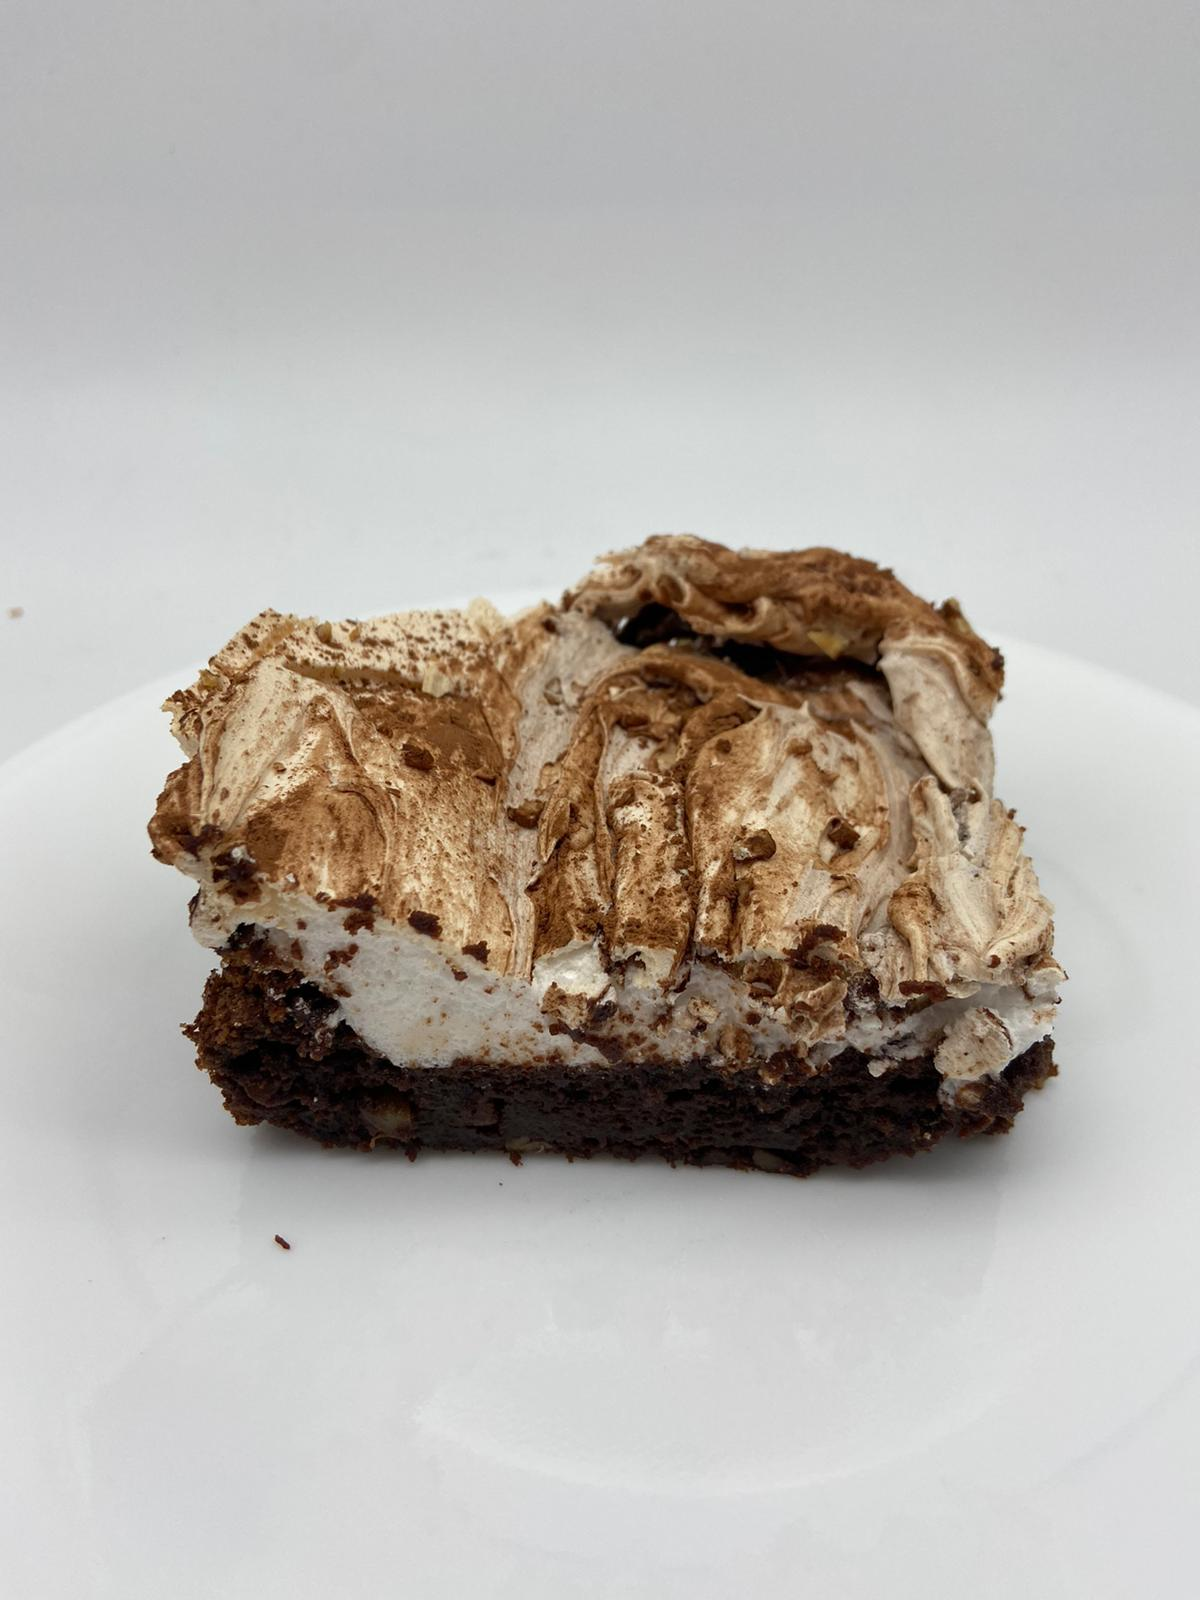 Flourless Chocolate-Pecan Cake with Meringue Topping